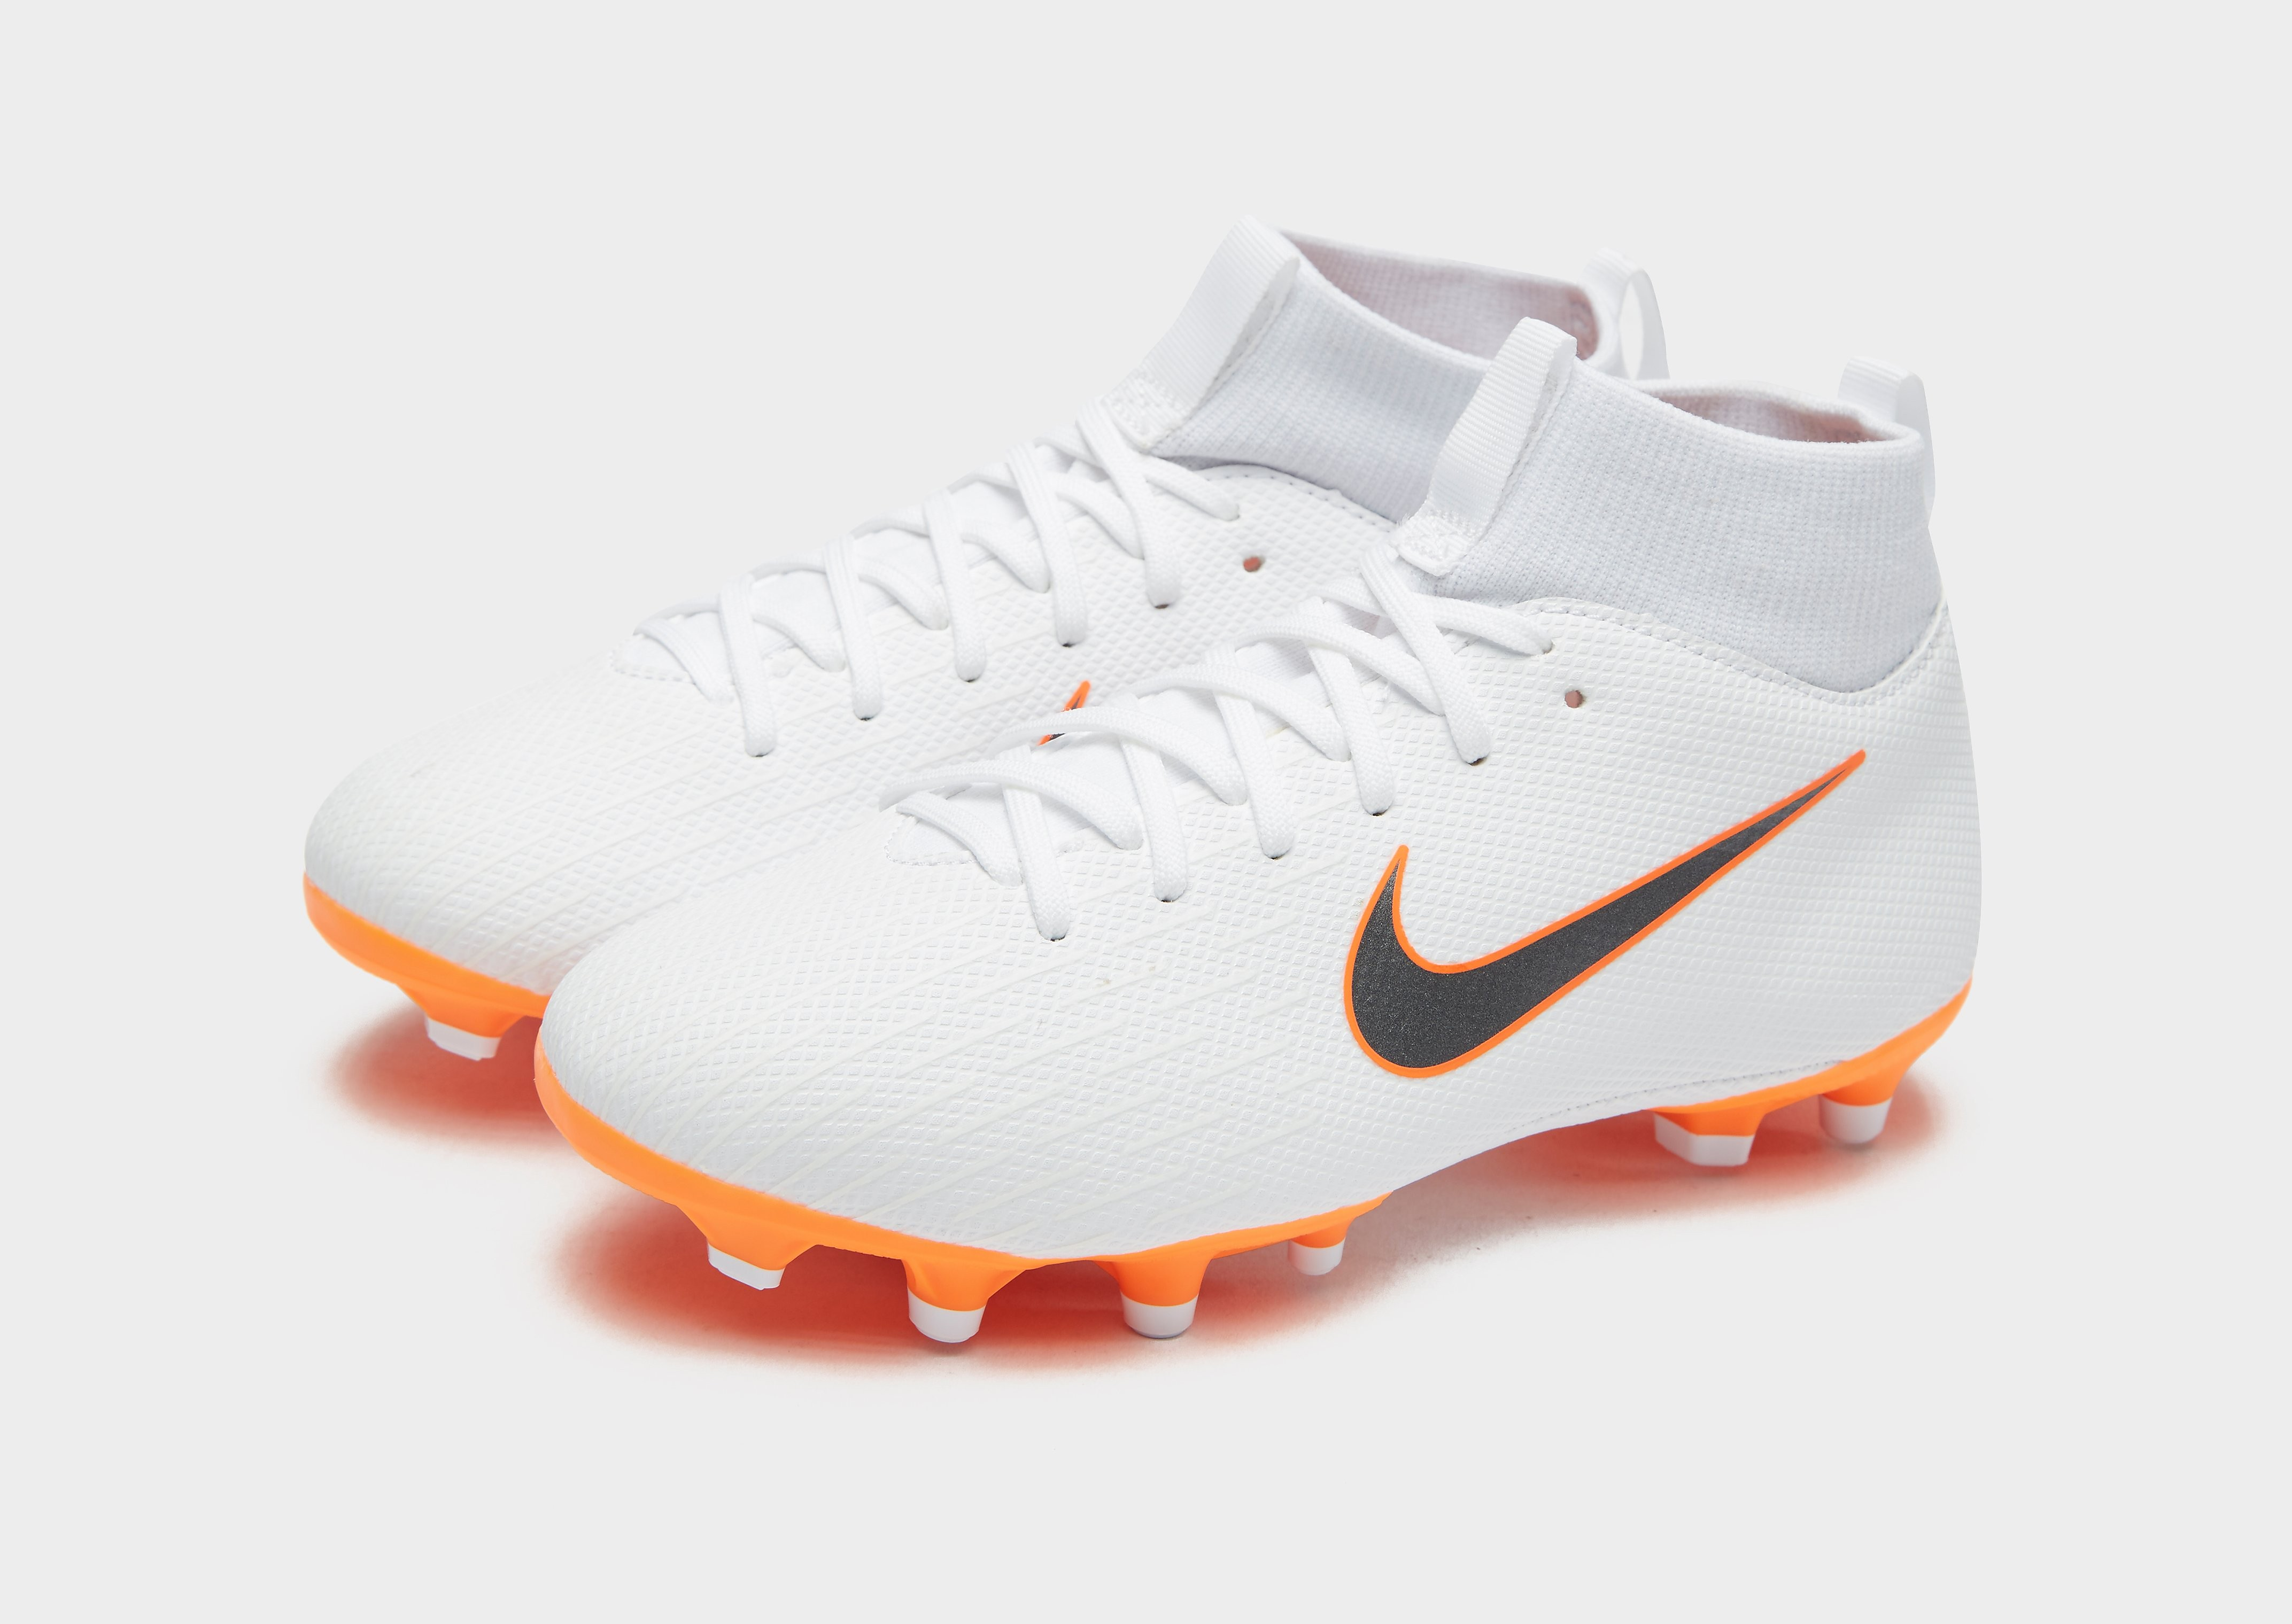 Nike Just Do It Mercurial Superfly Academy MG Children